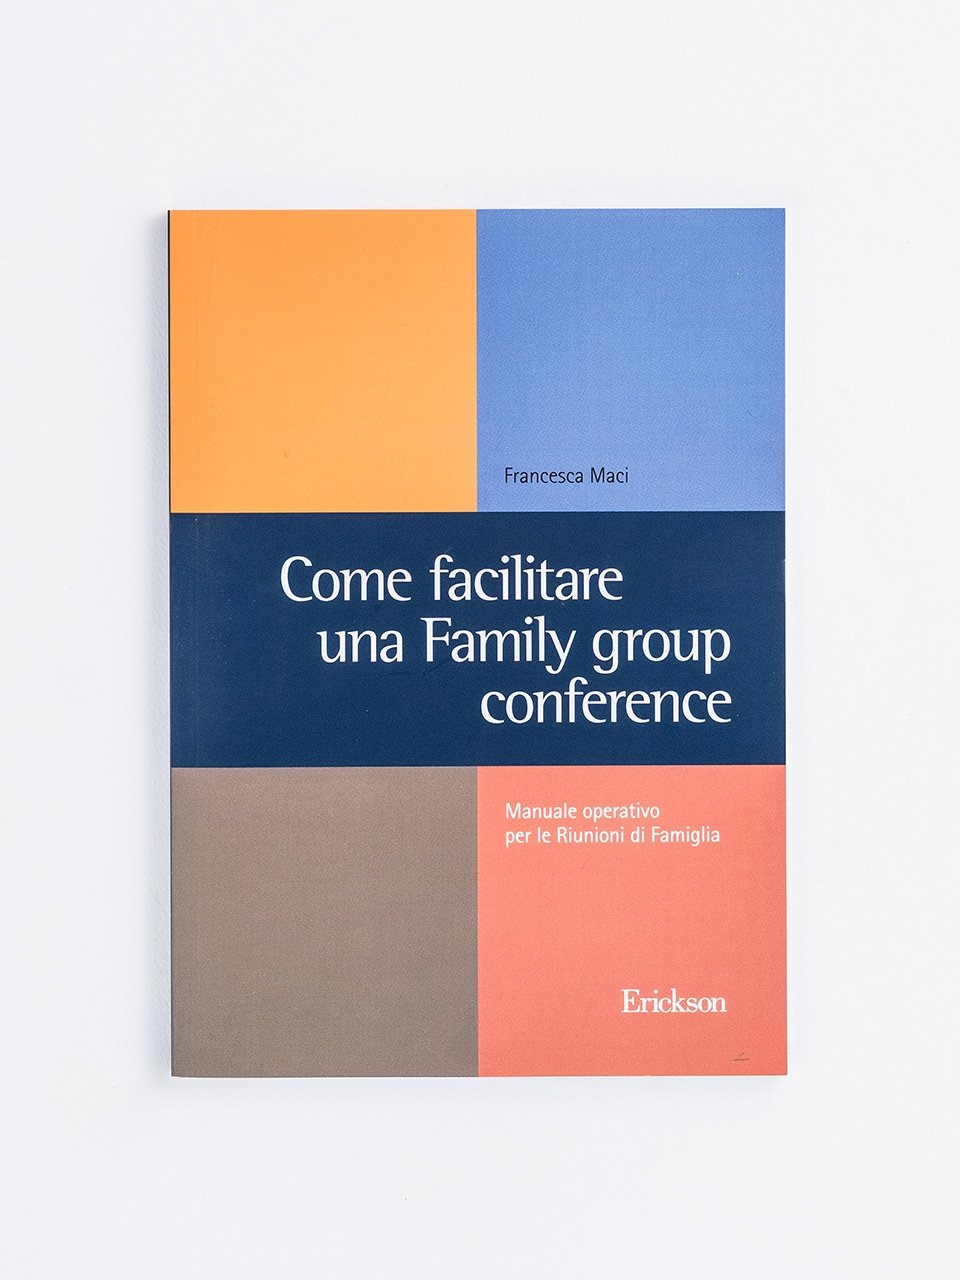 Come facilitare una Family group conference - Autoregolare l'attenzione - App e software - Erickson